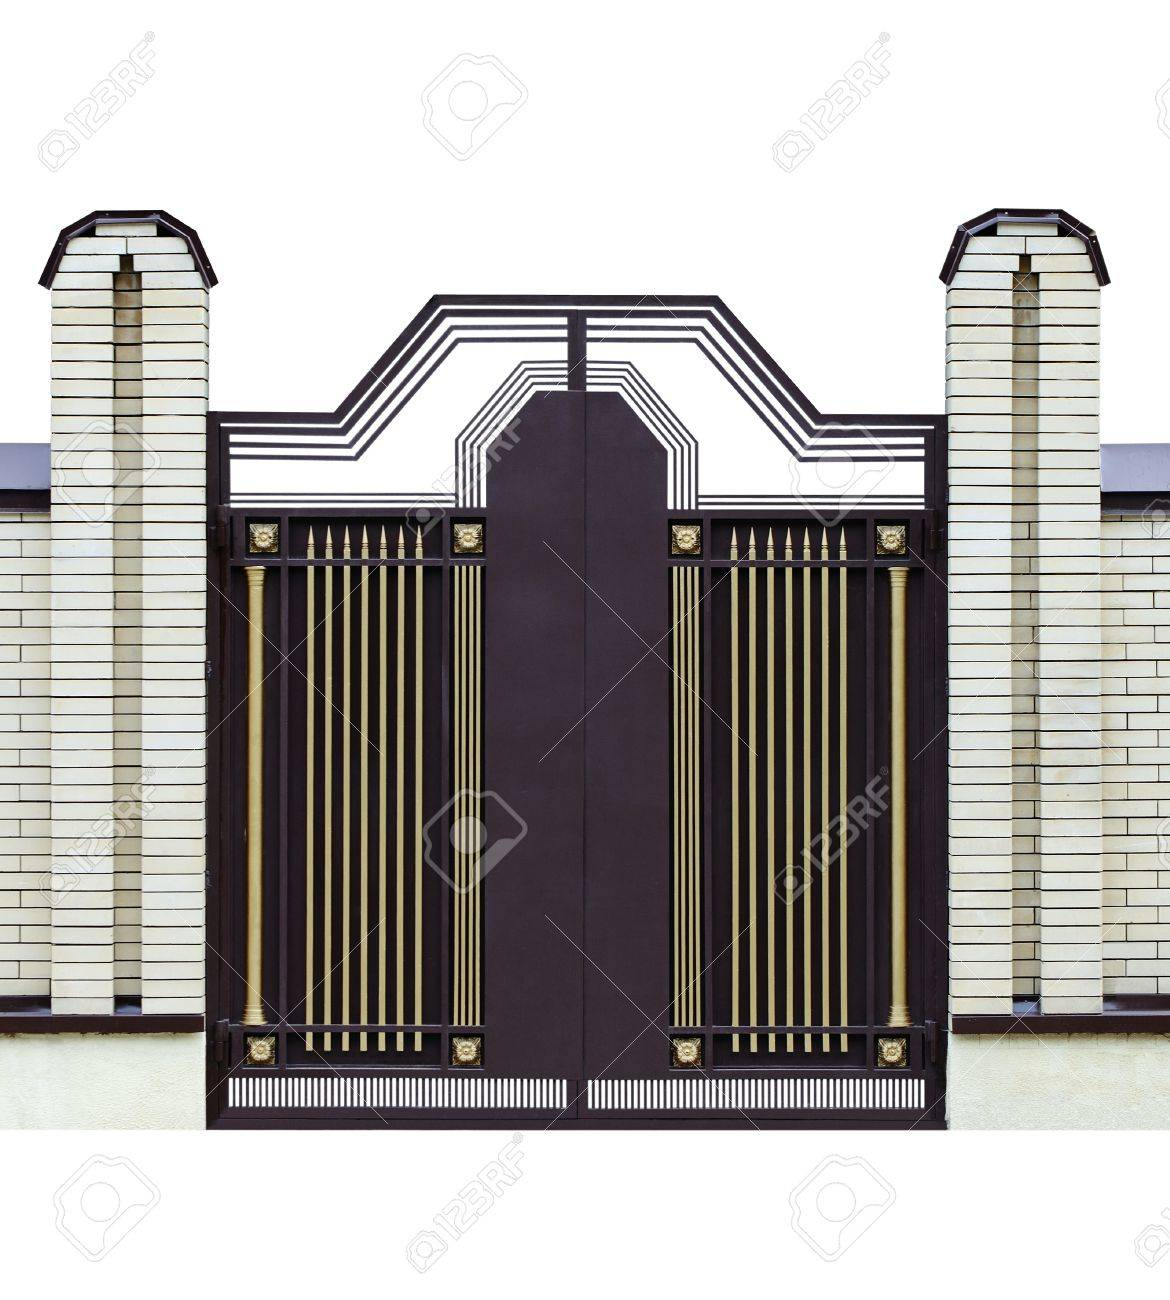 Modern  forged  decorative  gates   Isolated over white background Stock Photo - 13995067